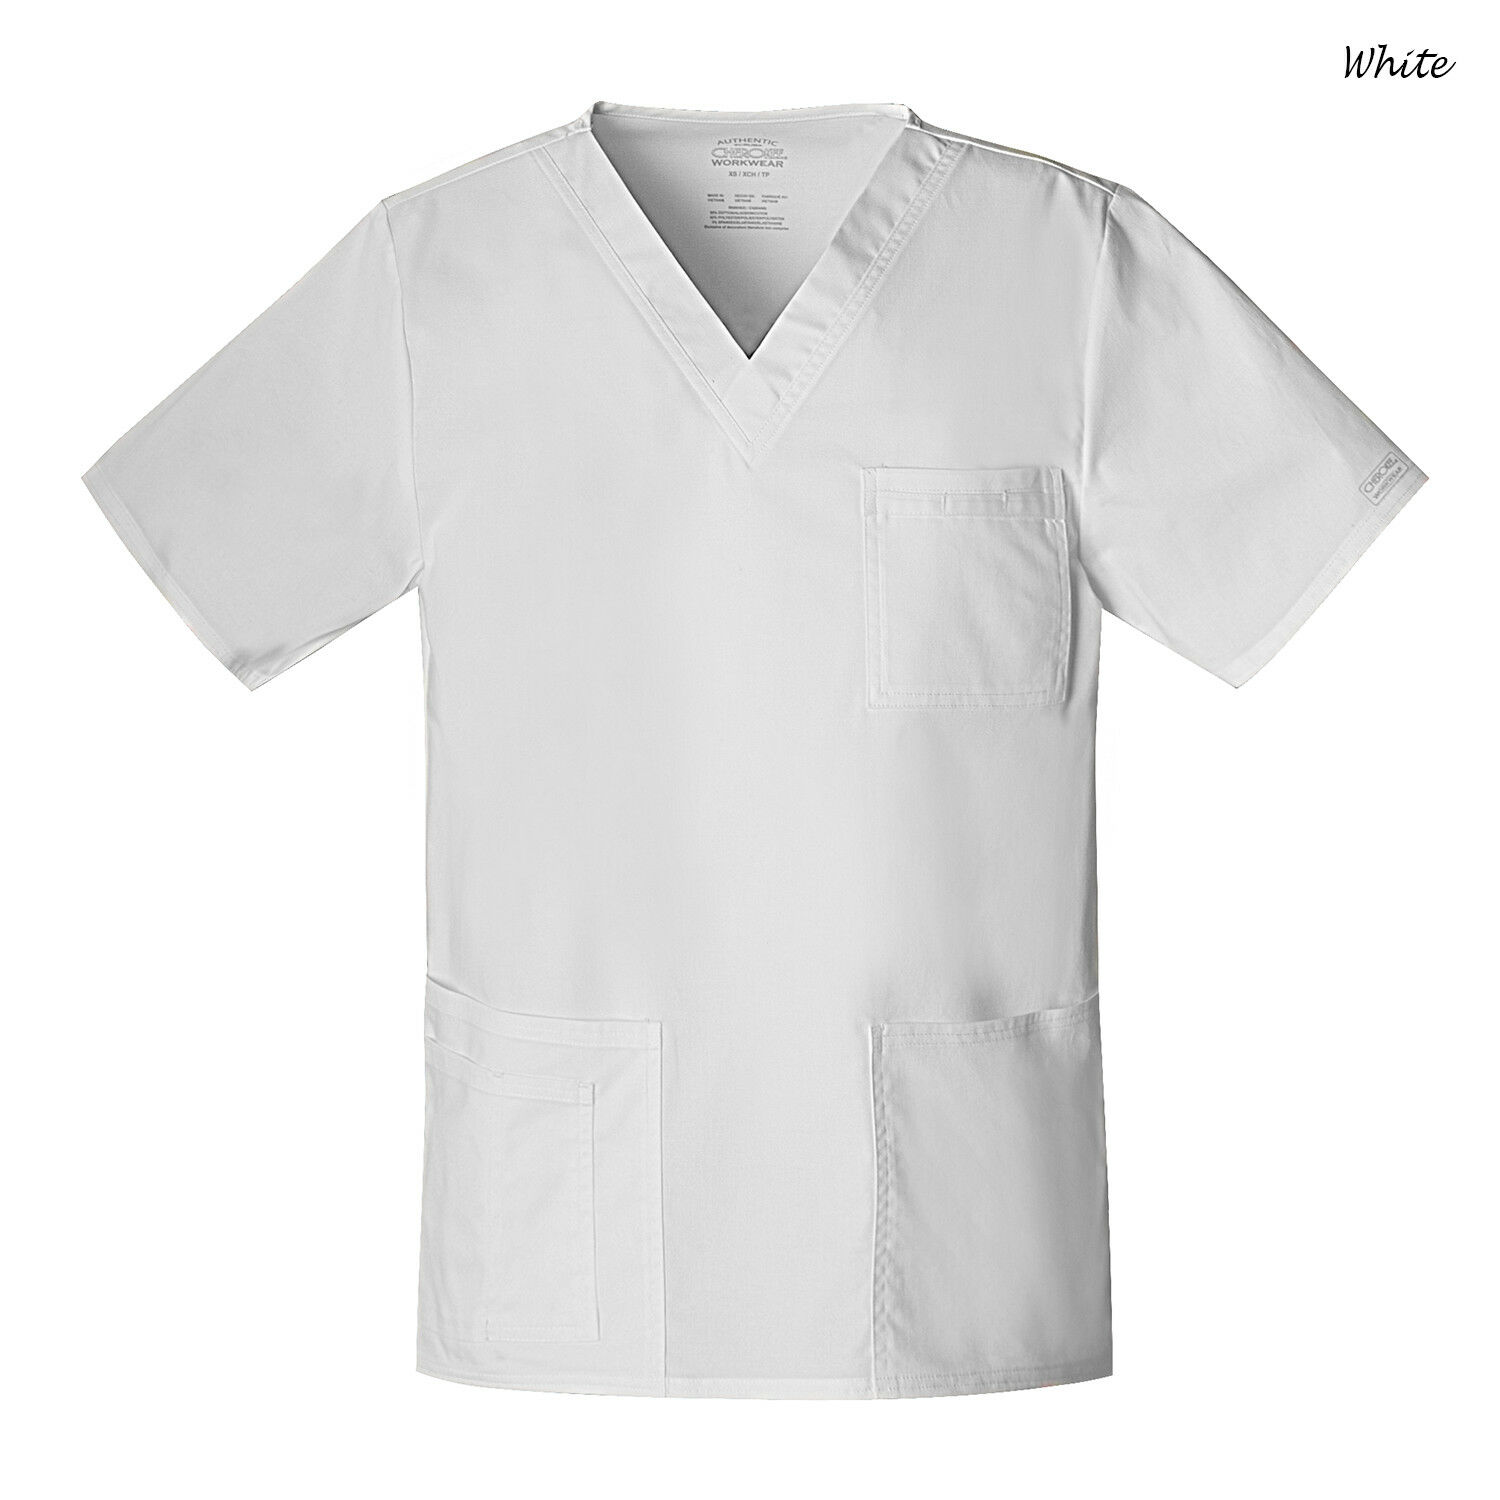 9ef8a30d9bf Scrubs Cherokee Workwear Unisex Core Stretch Top 4725 White 5xl for sale  online | eBay